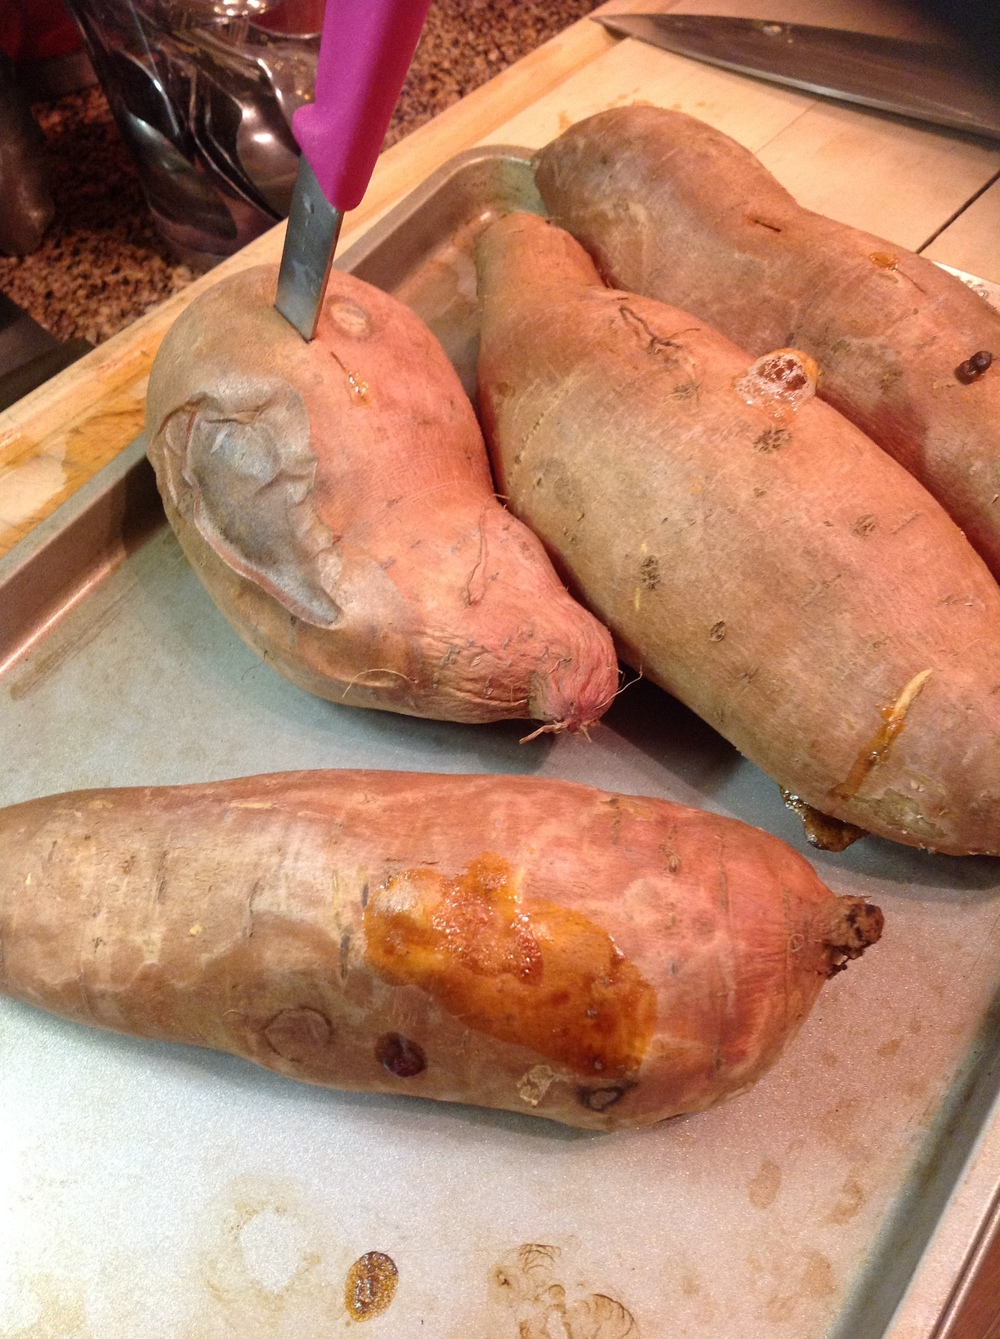 Roast Sweet Potatoes until Soft